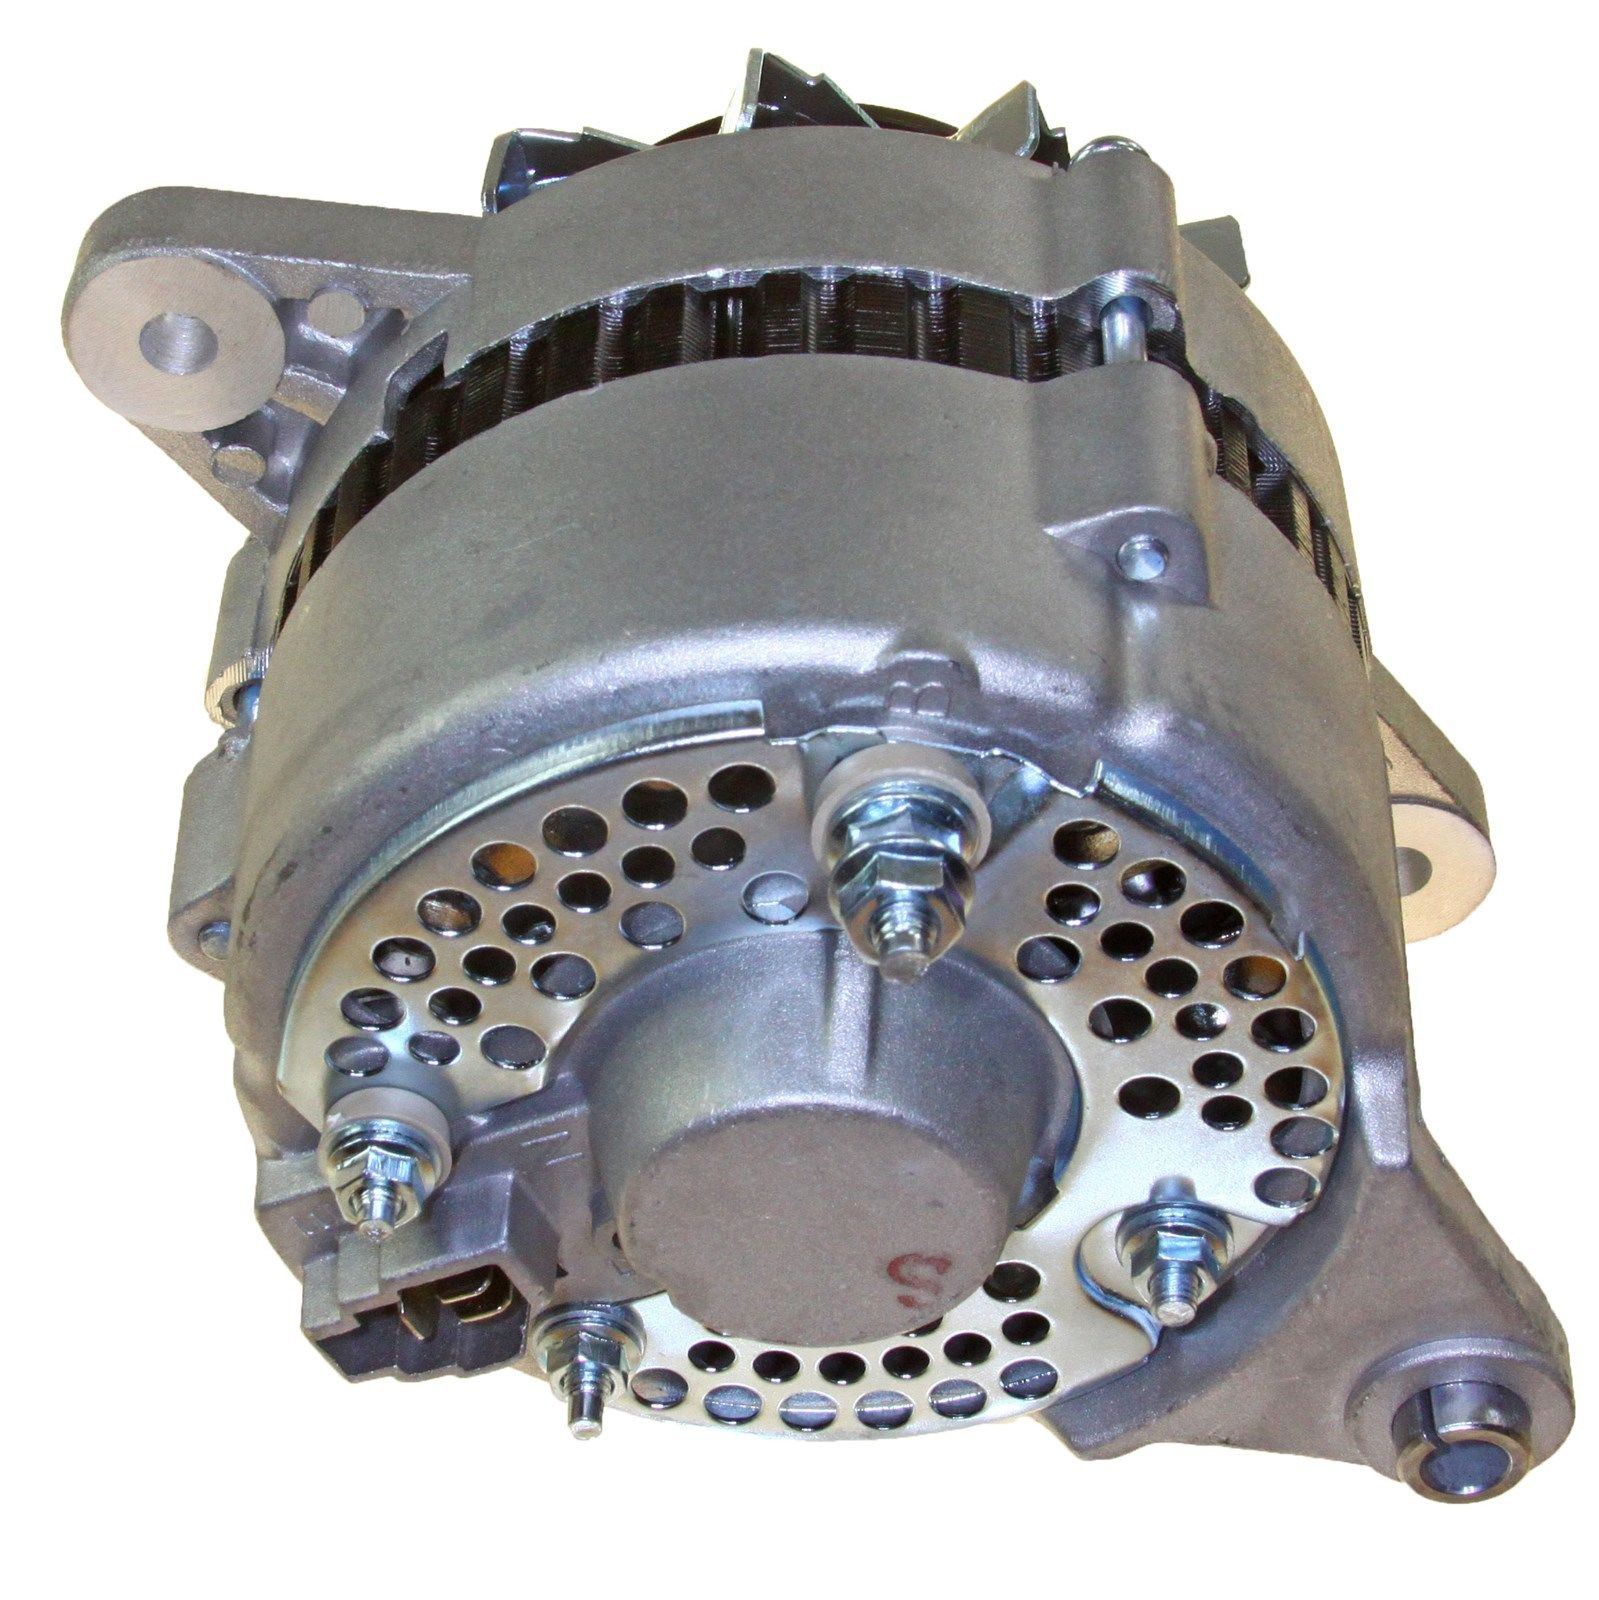 hight resolution of parts accessories new alternator kubota tractor l225 l225dt l225f l2350dt l2350f l235dt l235f l245